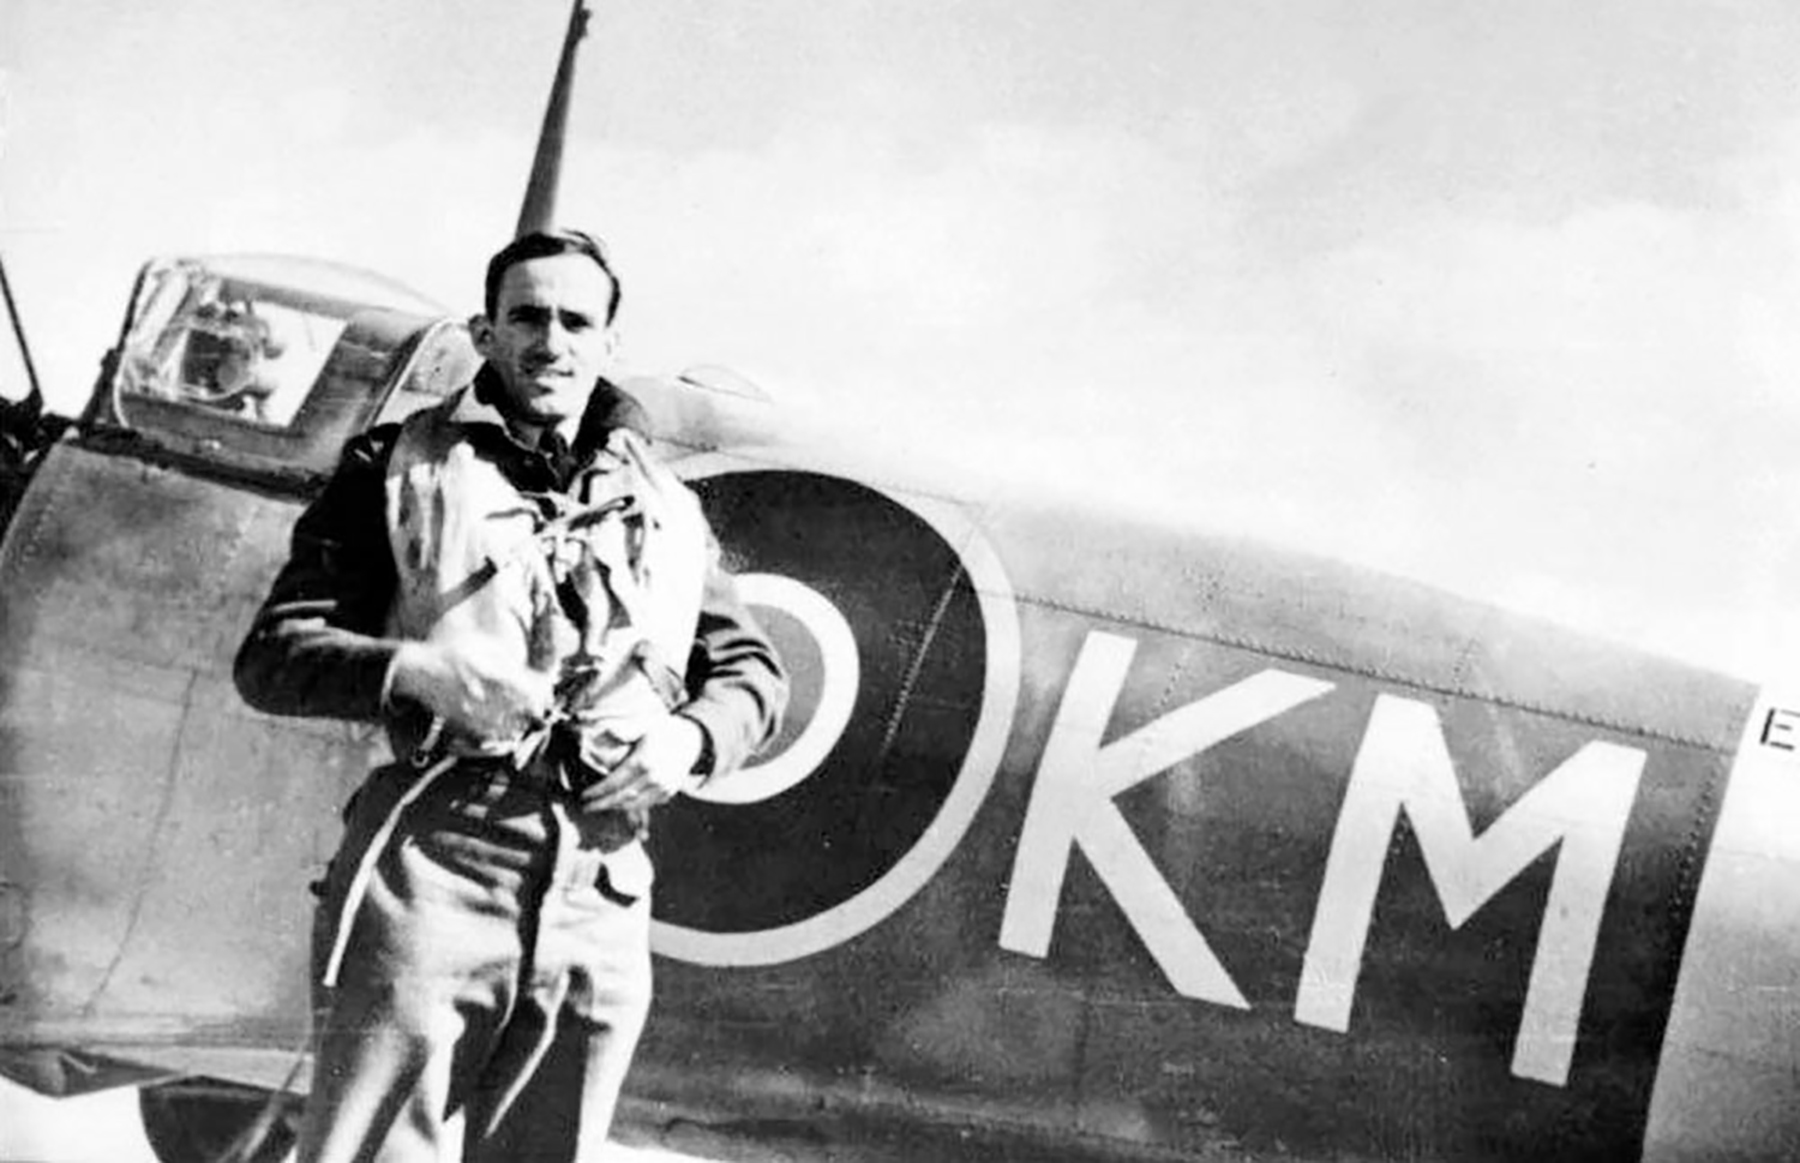 Aircrew RAF 313Sqn Czech pilot W.Cdr Karel Mrazek with his personal Spitfire KM EN765 1942 01